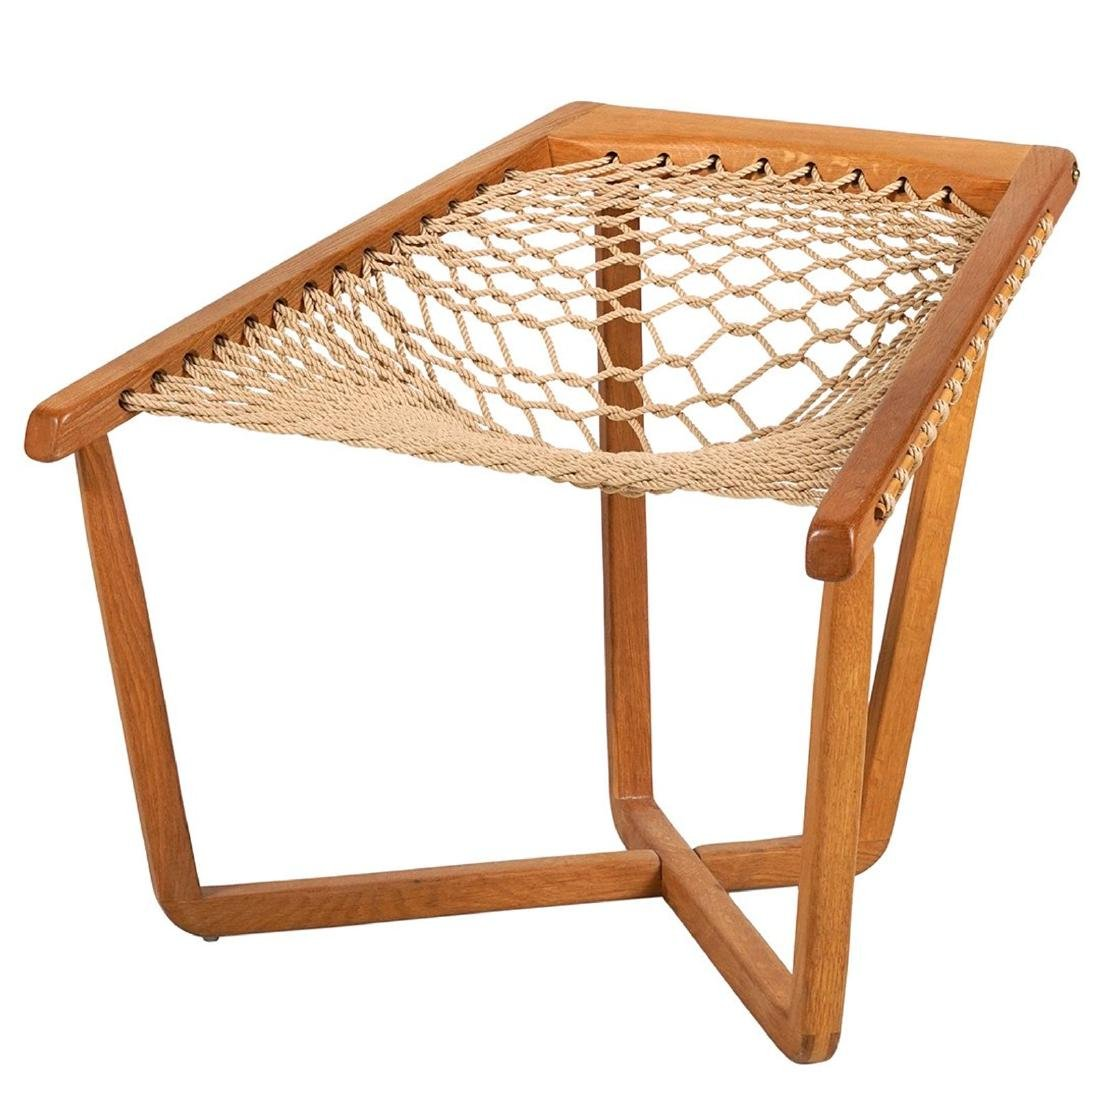 Woven Sling Lounge Chair